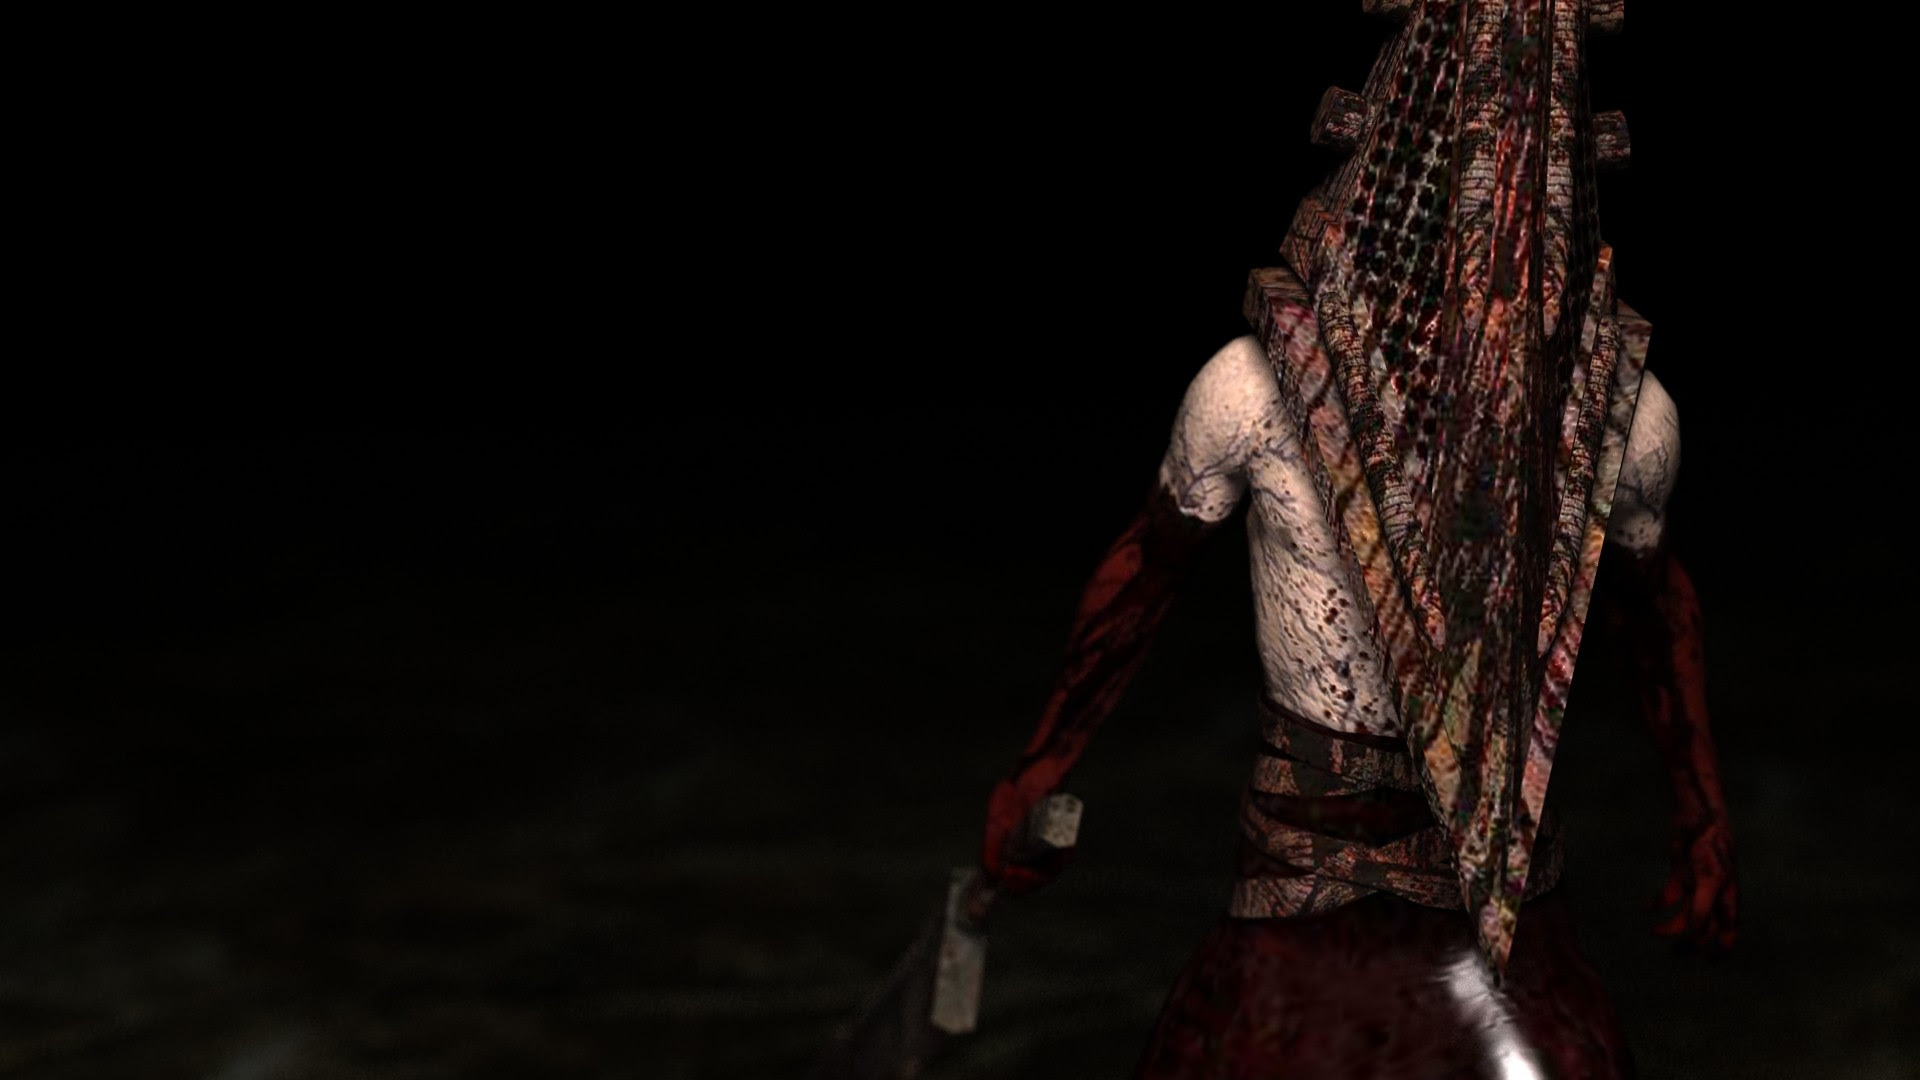 Silent Hill Pyramid Head Wallpaper 71 Images